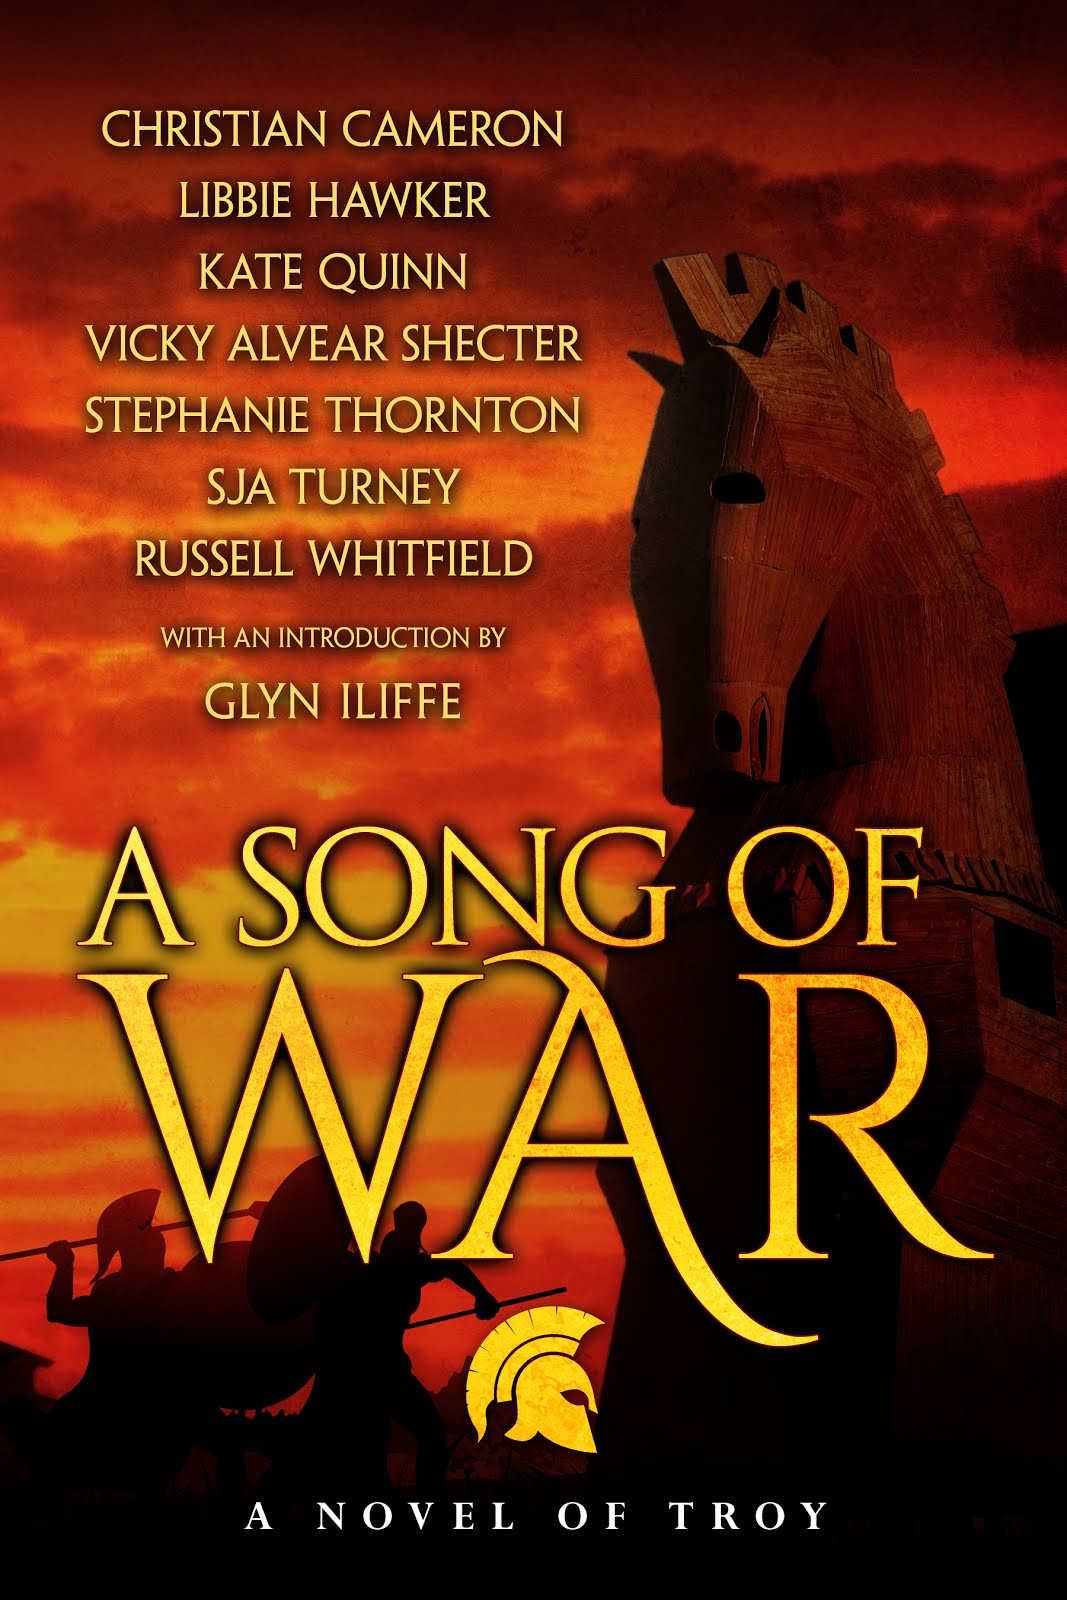 PRE-ORDER A SONG OF WAR